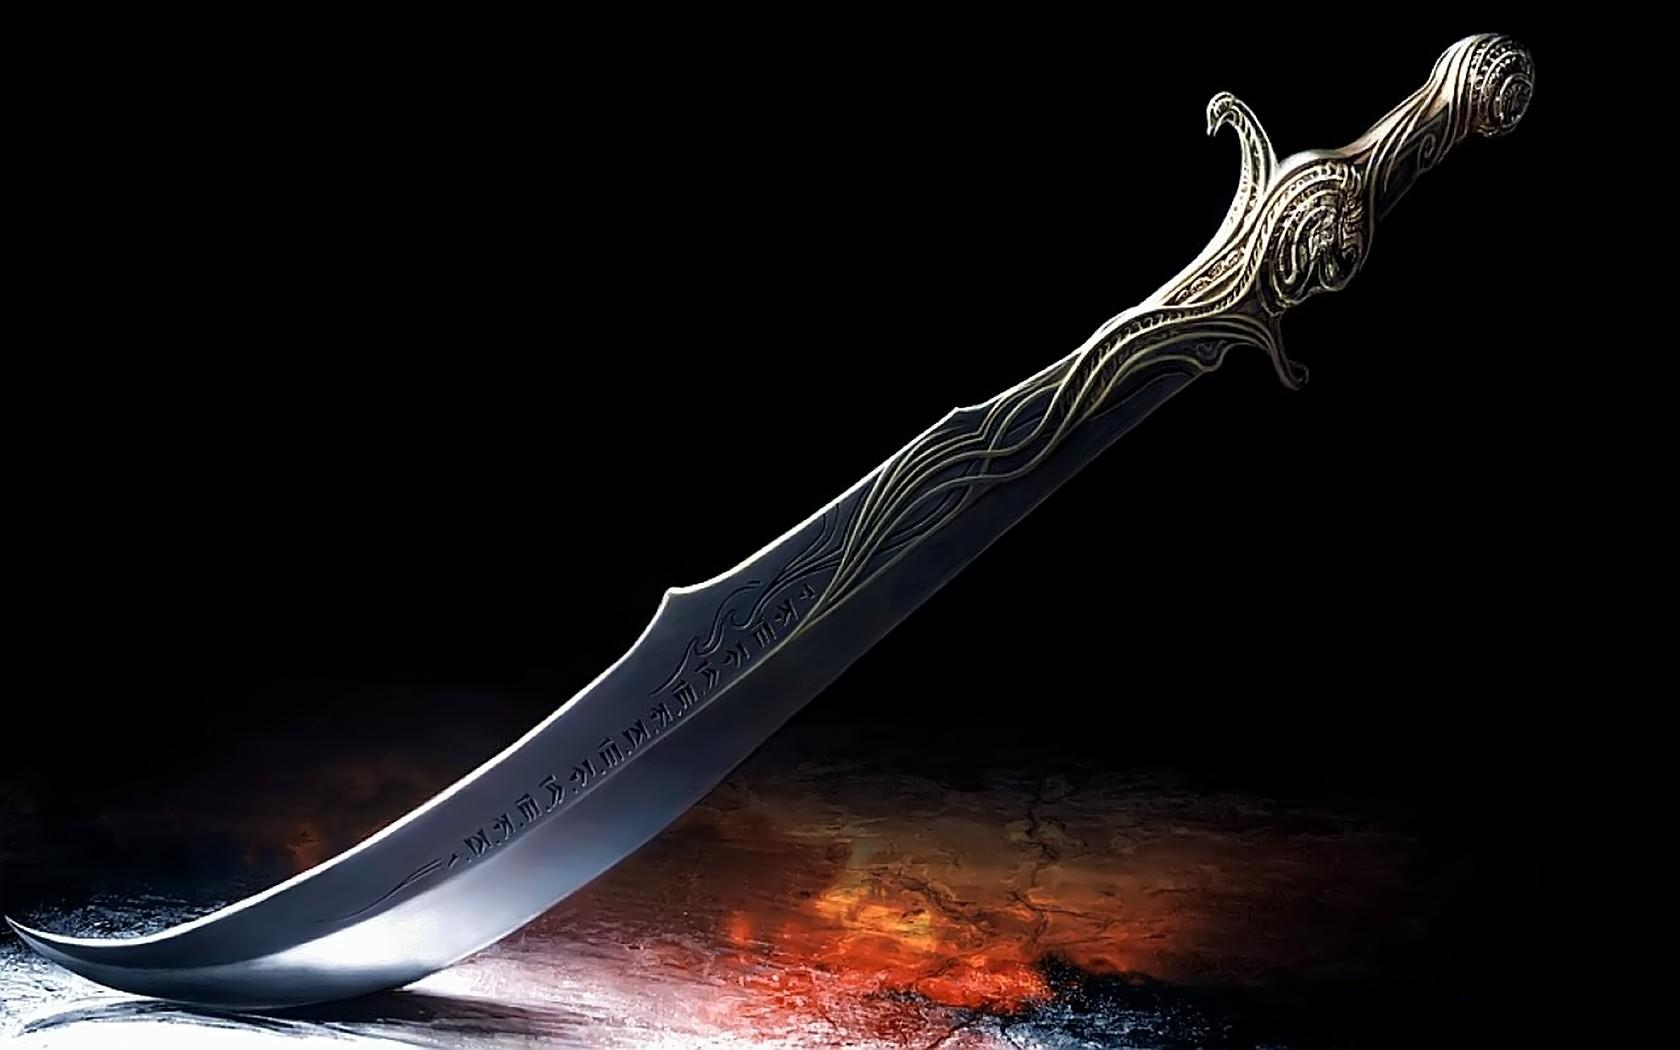 [48+] Cool Sword Wallpapers on WallpaperSafari